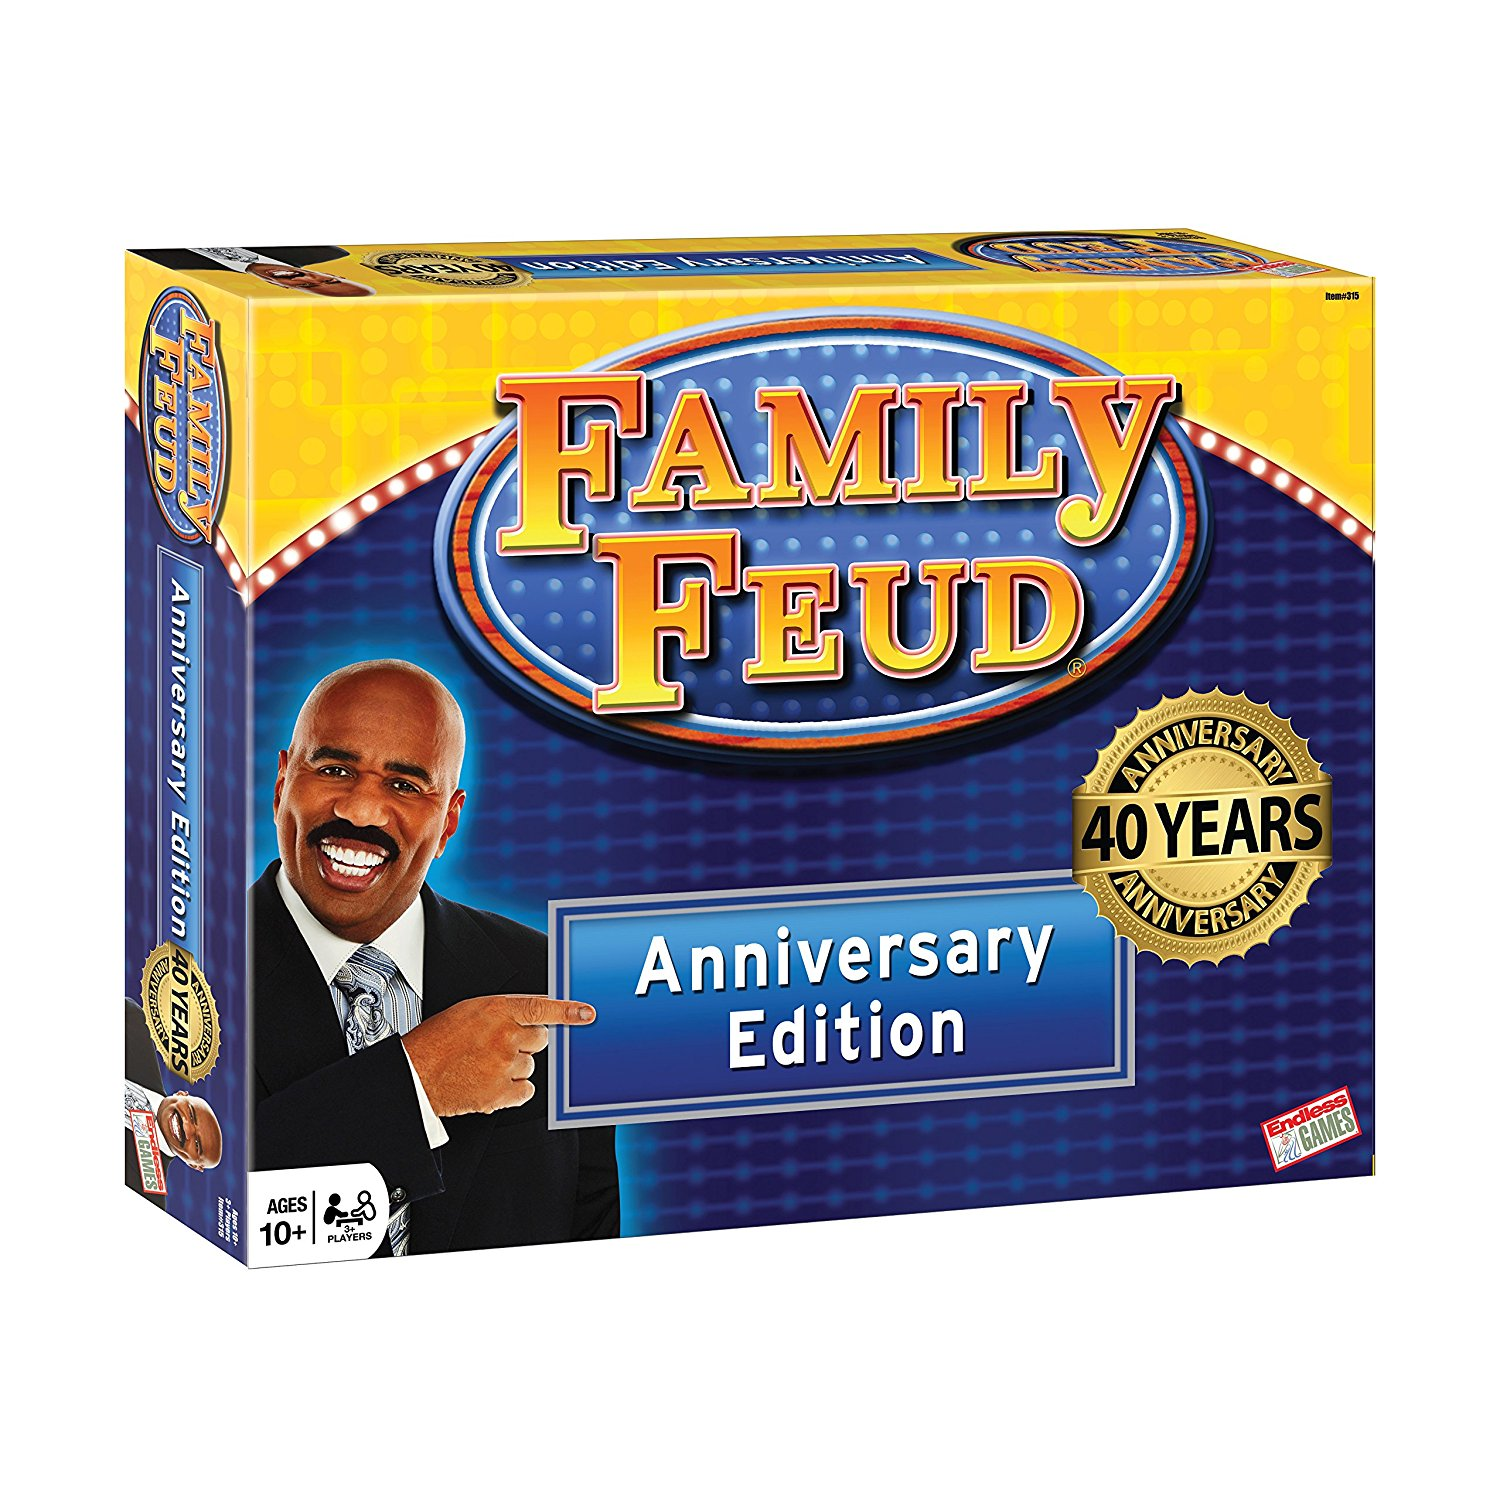 Family Feud 40th, 40th Anniversary edition features the c...